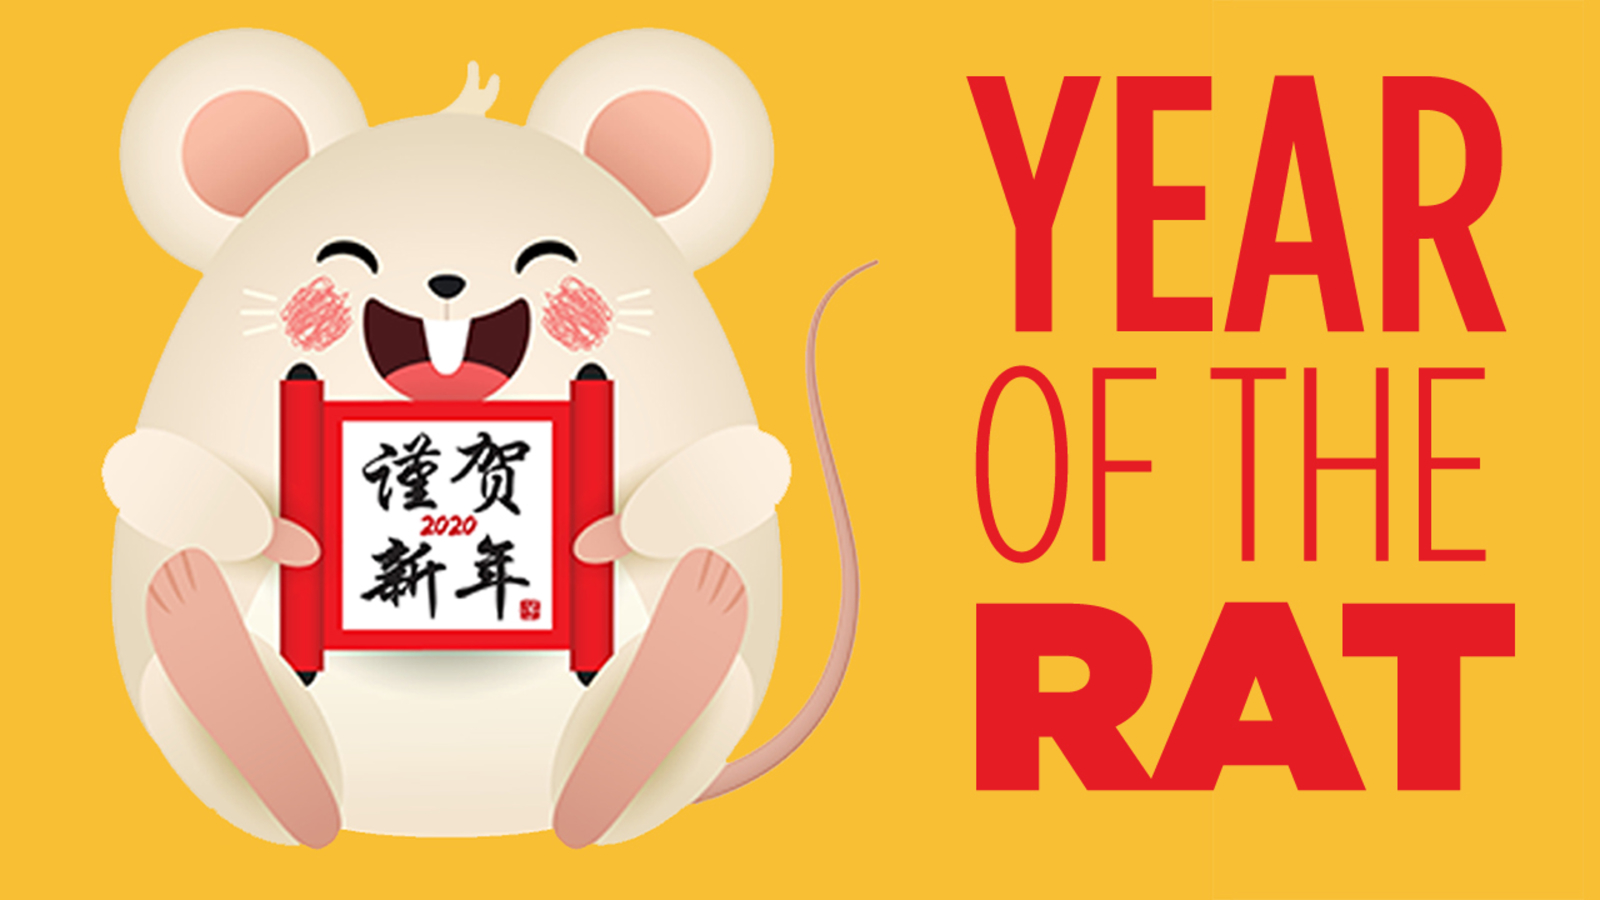 happy lunar new year 2020 is the year of the rat 6abc philadelphia happy lunar new year 2020 is the year of the rat 6abc philadelphia